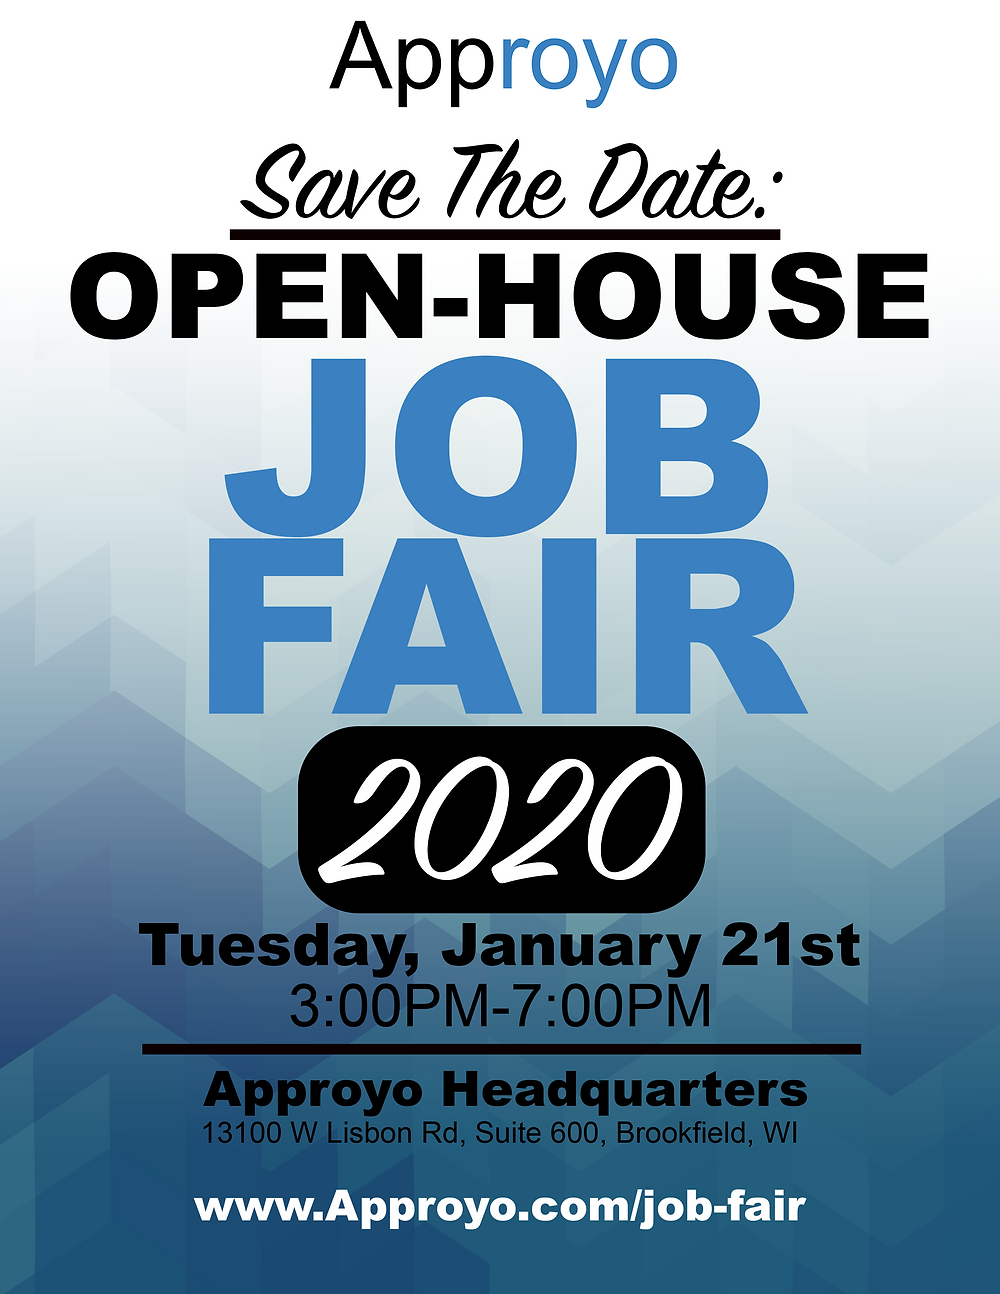 Save The Date flyer: Open-House Job Fair 2020. Tuesday, January 21st, 3:00pm-7:00pm at Approyo Headquarters, 13100 W Lisbon Rd, Suite 600, Brookfield, WI. www.approyo.com/job-fair